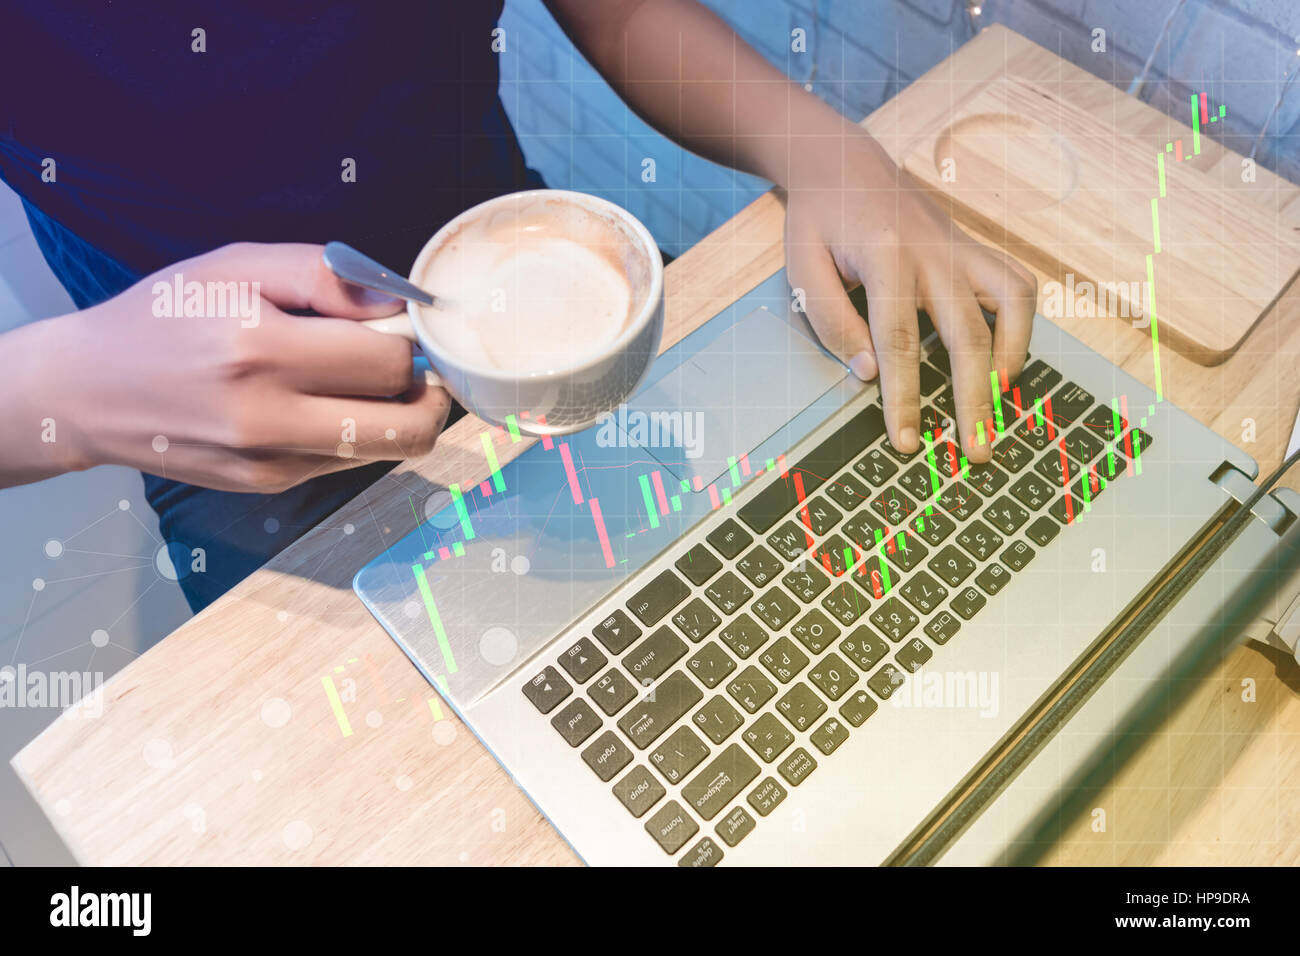 business trading concept : man trade stock and forex in notebook and analysis market financial data statistics chart - Stock Image